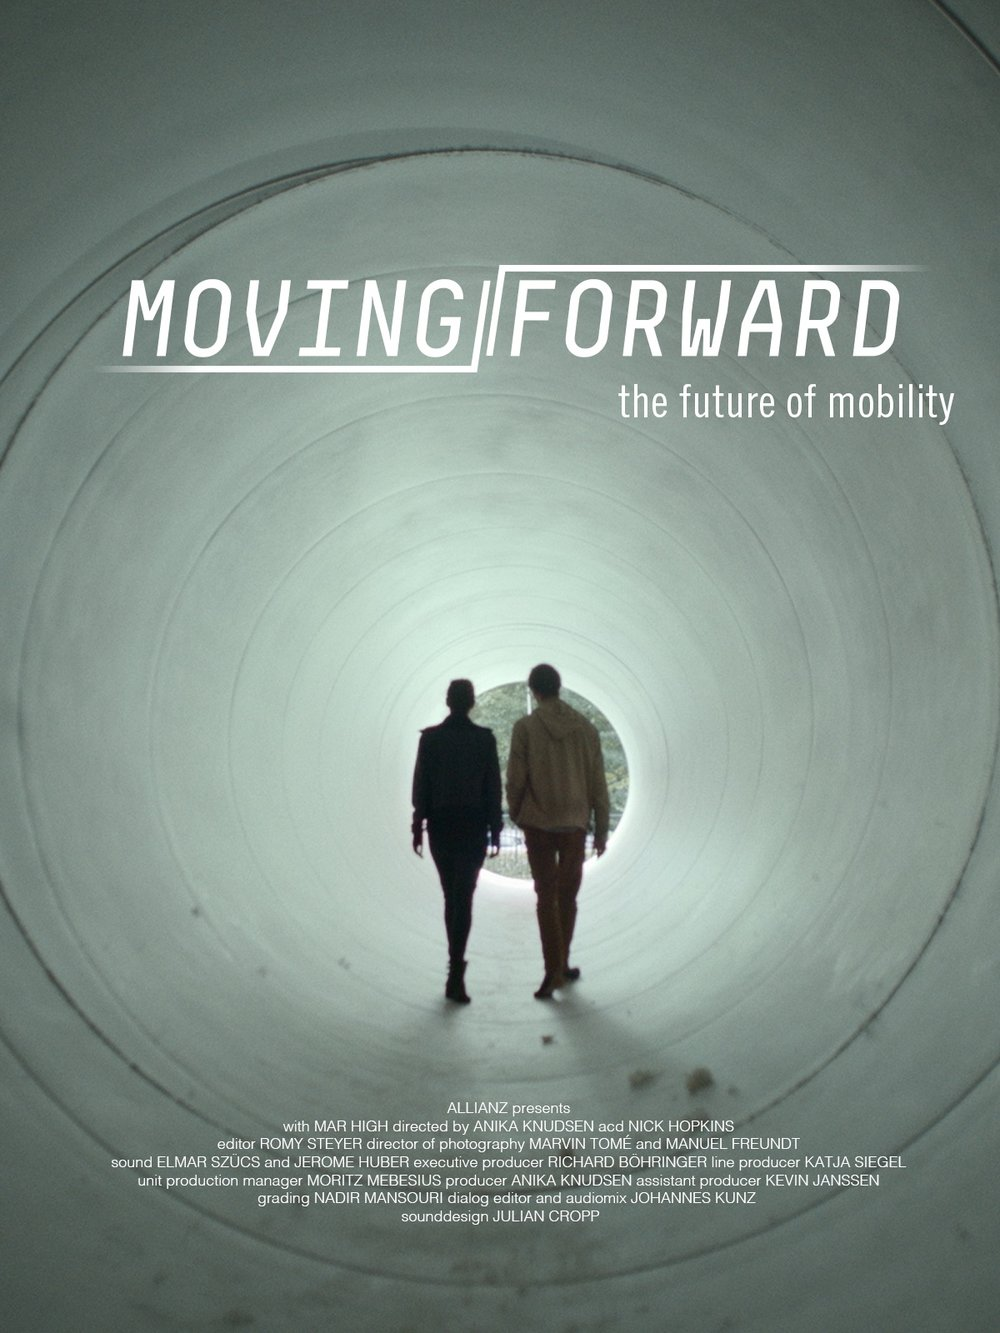 Moving Forward Promo Image